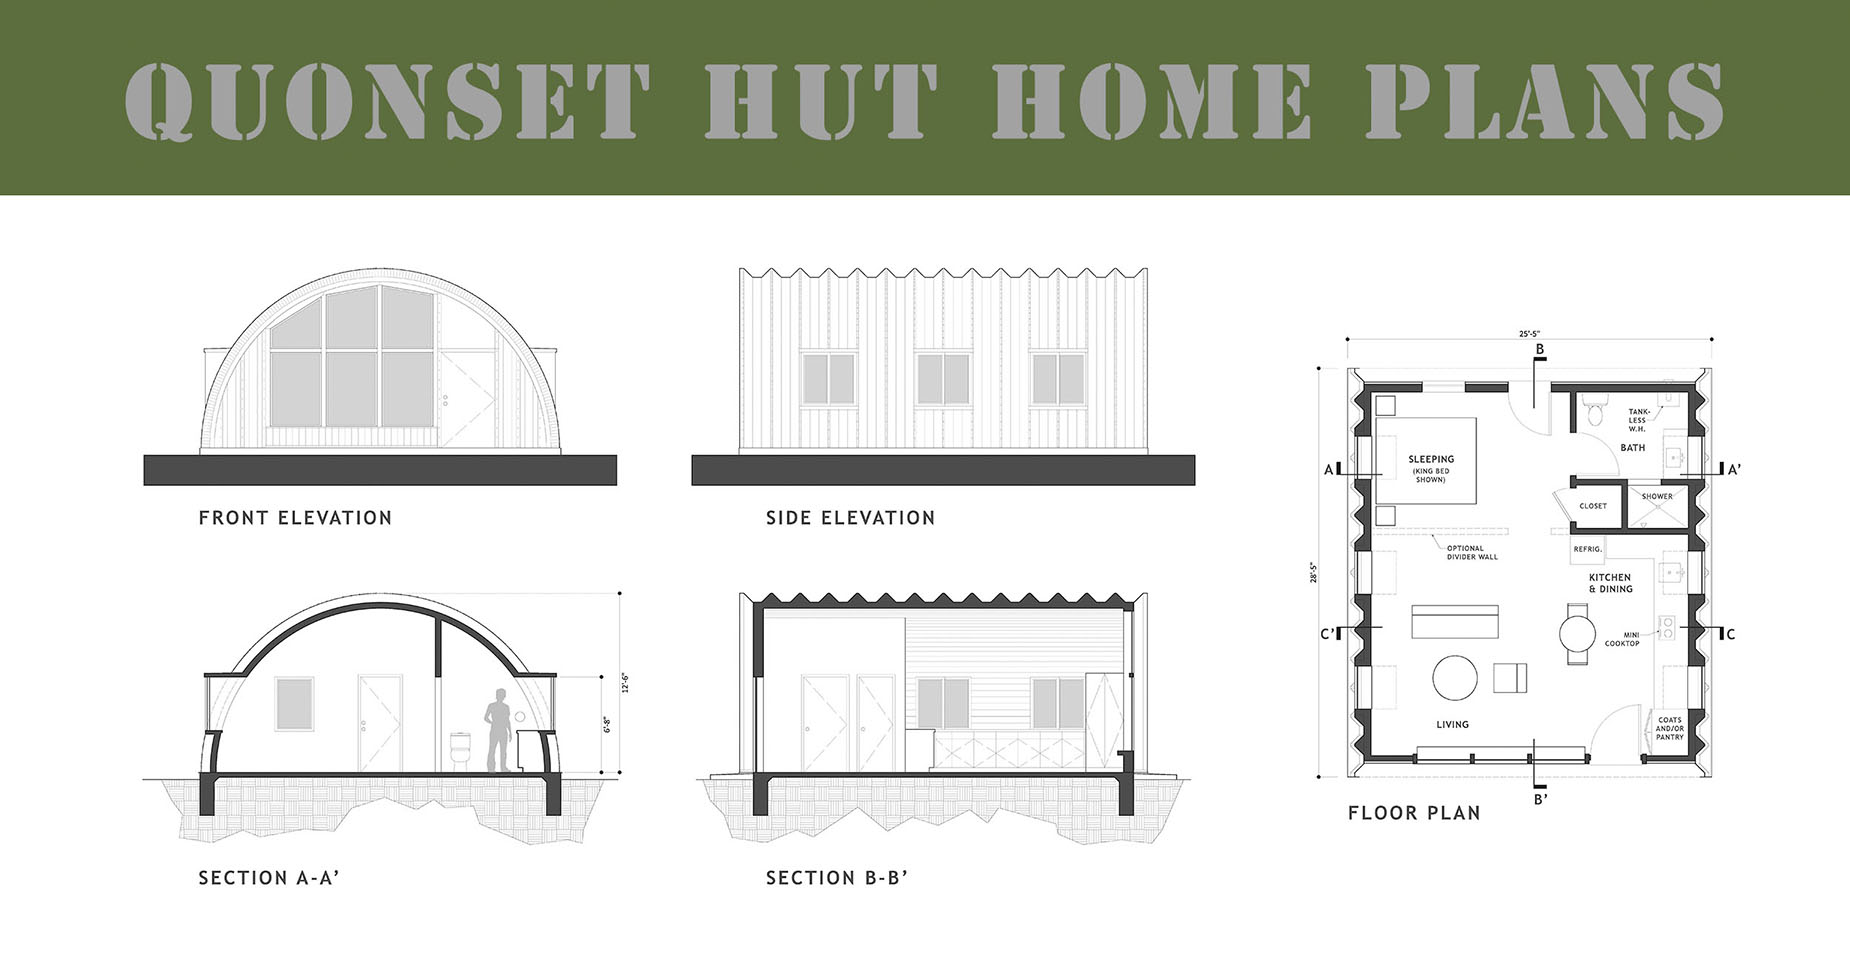 "Graphic image of Quonset hut drawings with title ""Quonset Hut Home Plans""."